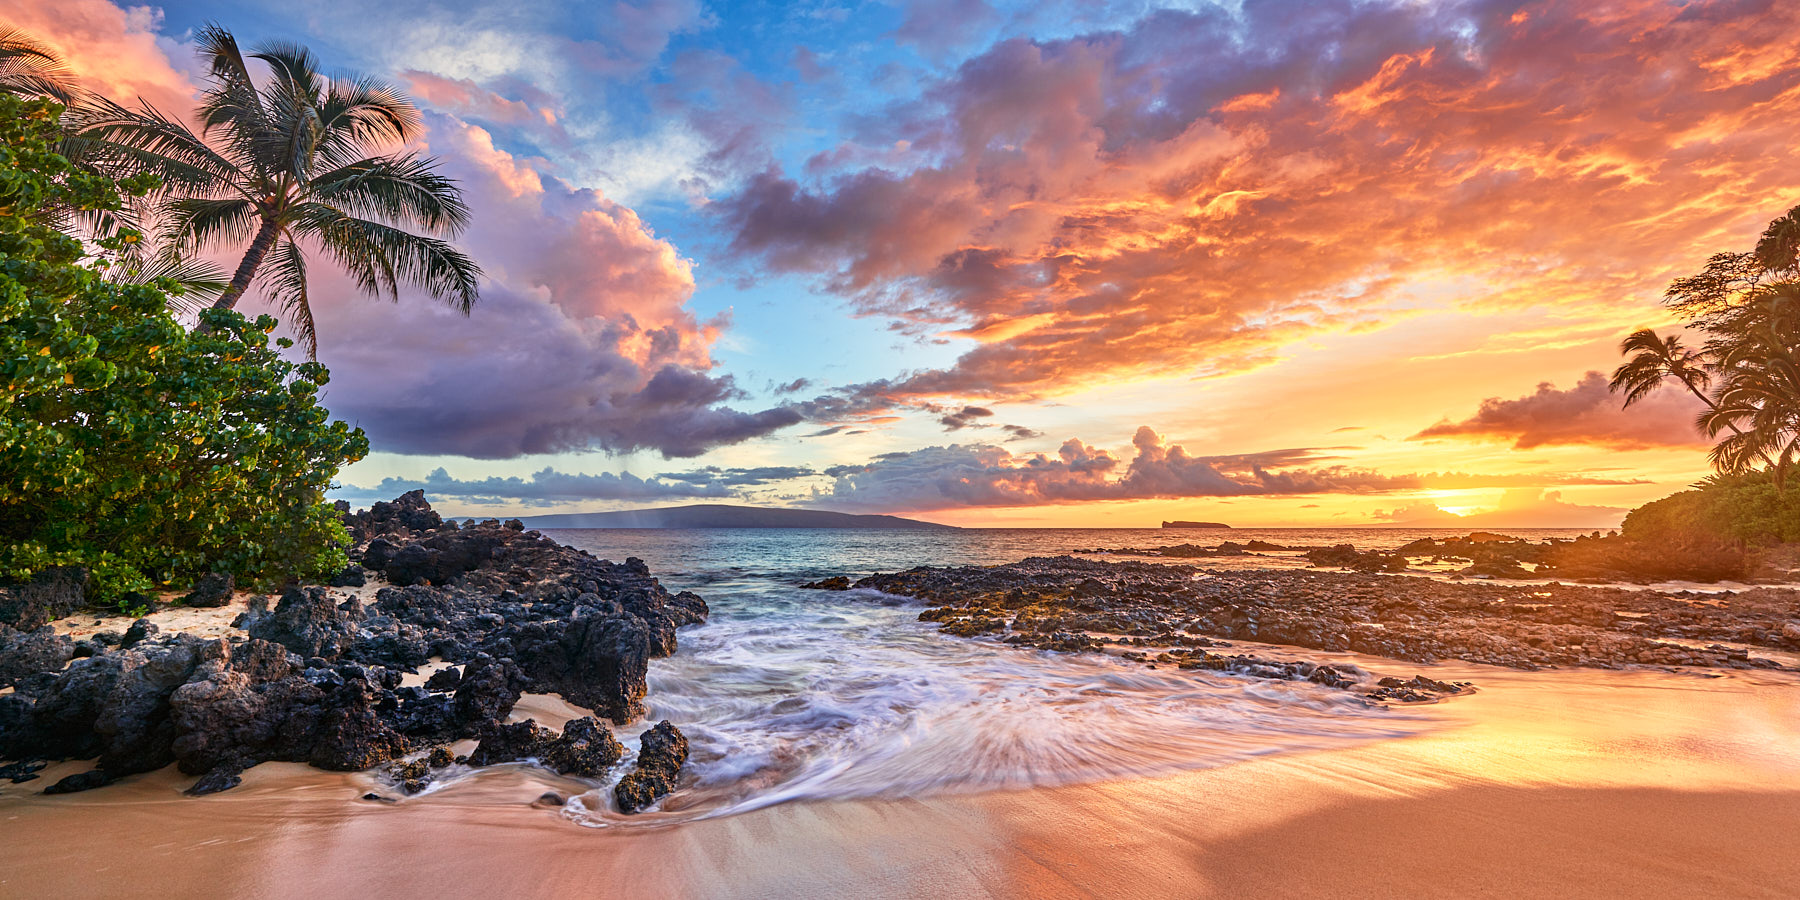 A very special panoramic view of sunset at a very special Secret Beach in Makena on the island of Maui, Hawaii